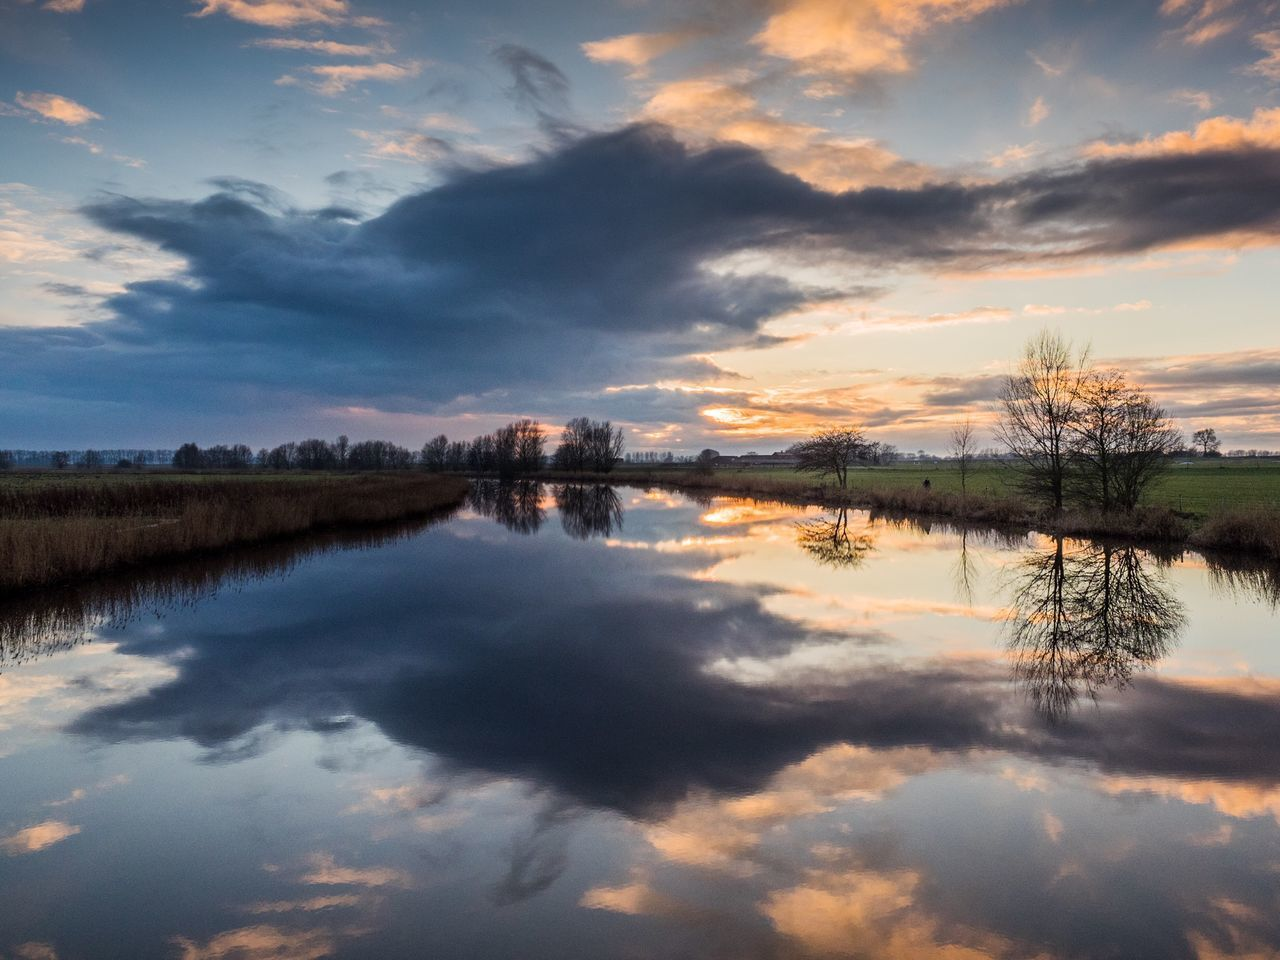 reflection, water, cloud - sky, sky, tranquility, nature, tranquil scene, scenics, beauty in nature, standing water, lake, outdoors, no people, waterfront, sunset, symmetry, tree, day